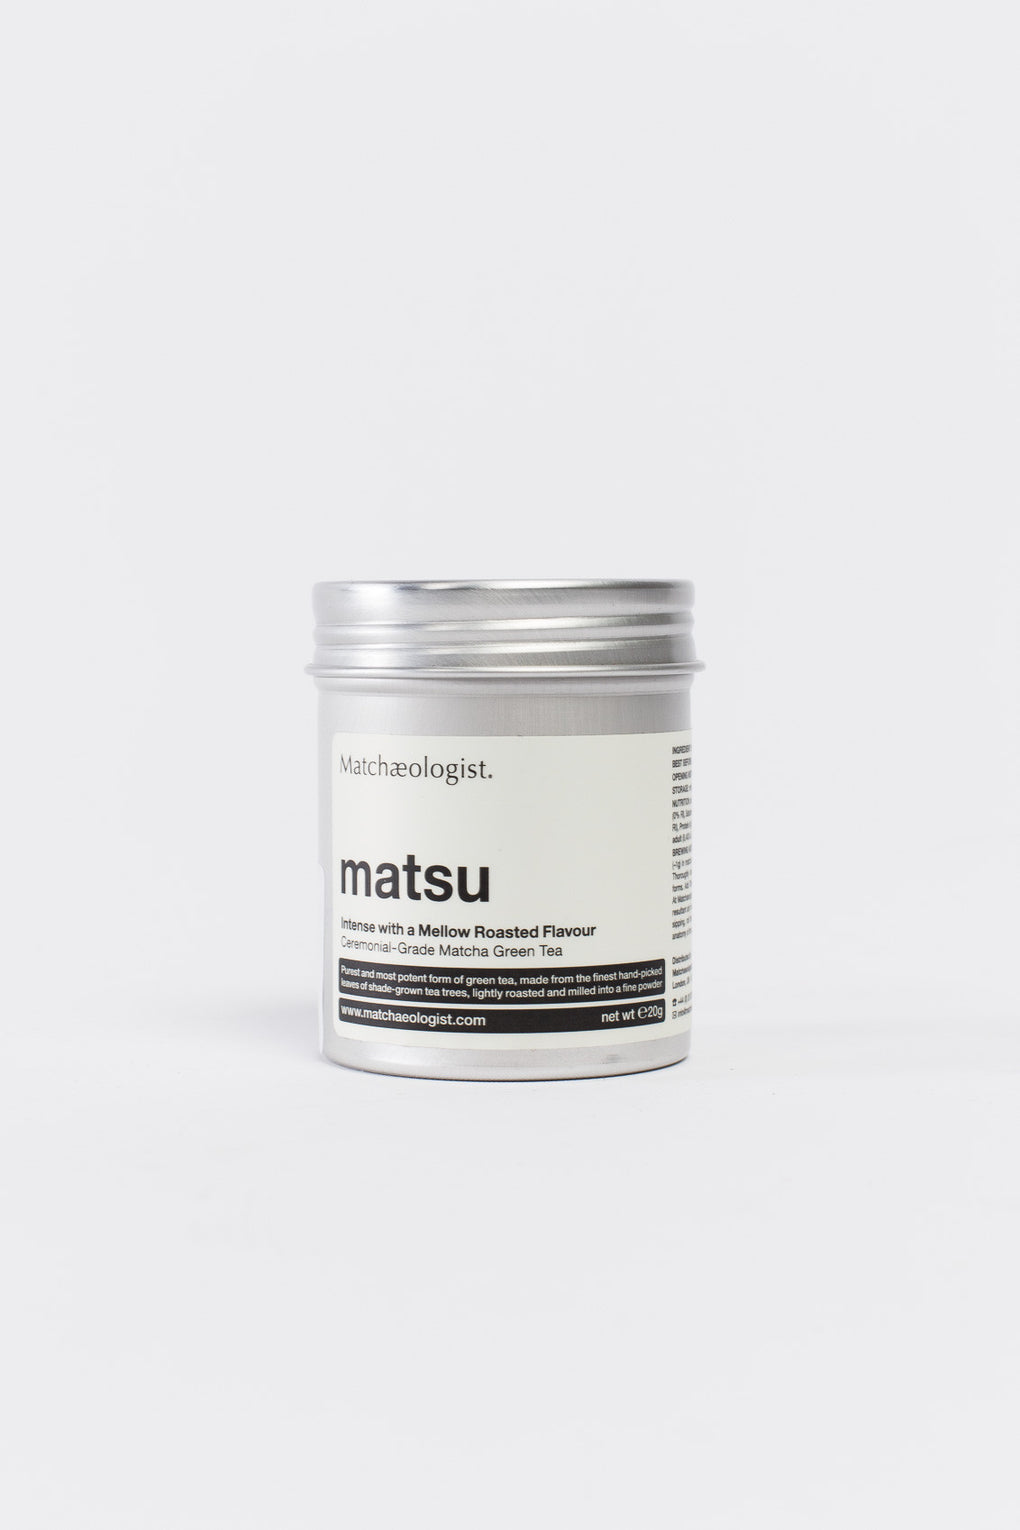 matchaeologist-matcha powder-idun-saint paul